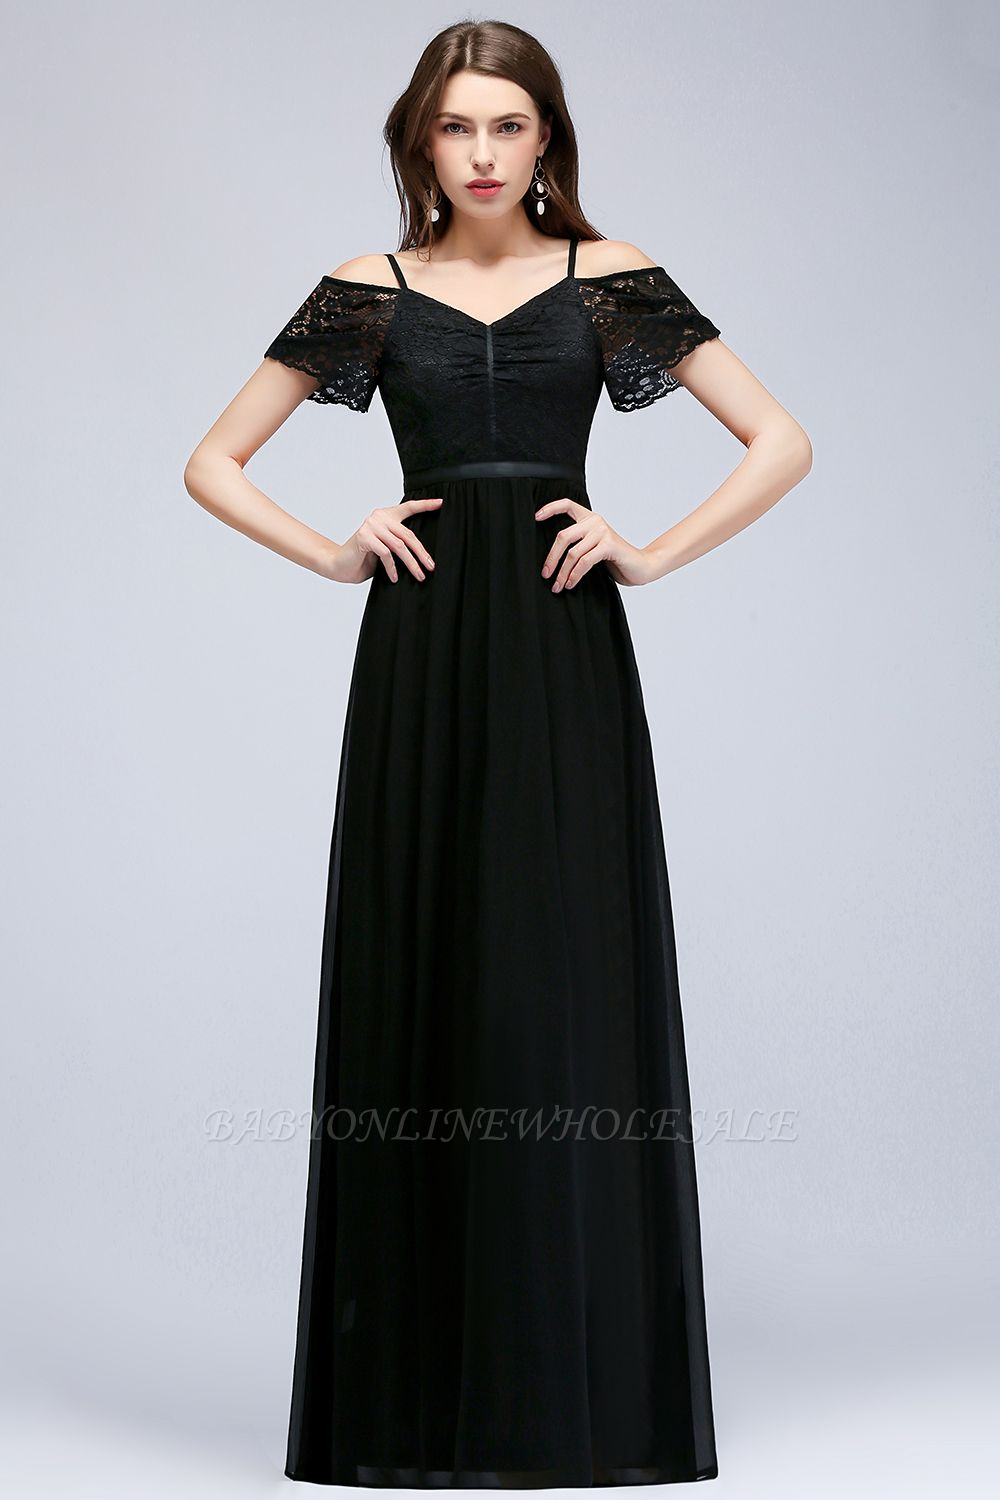 MAGNOLIA | A-line Long Spaghetti V-neck Black Lace Chiffon Bridesmaid Dresses